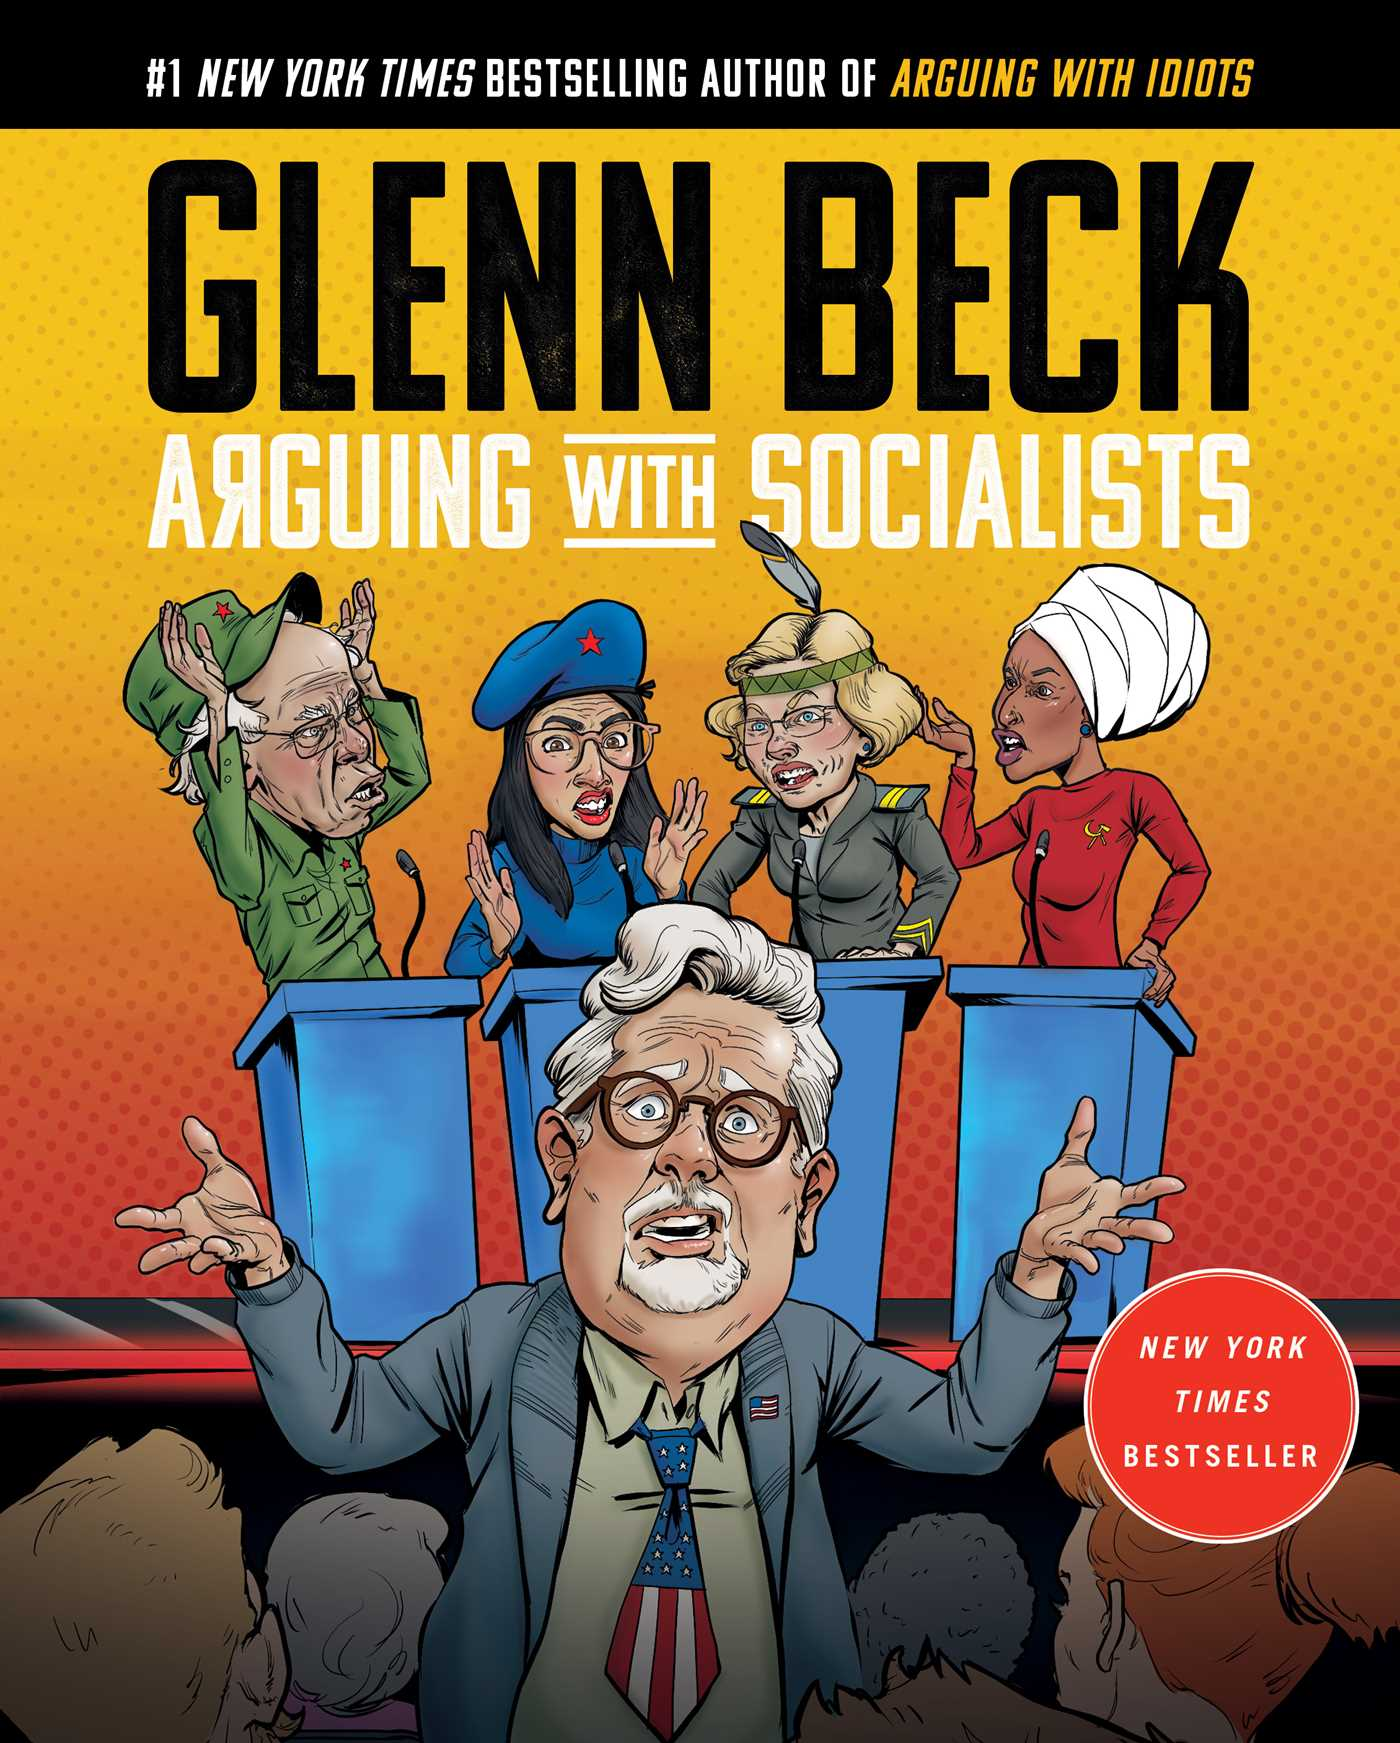 Arguing with Socialists cover image